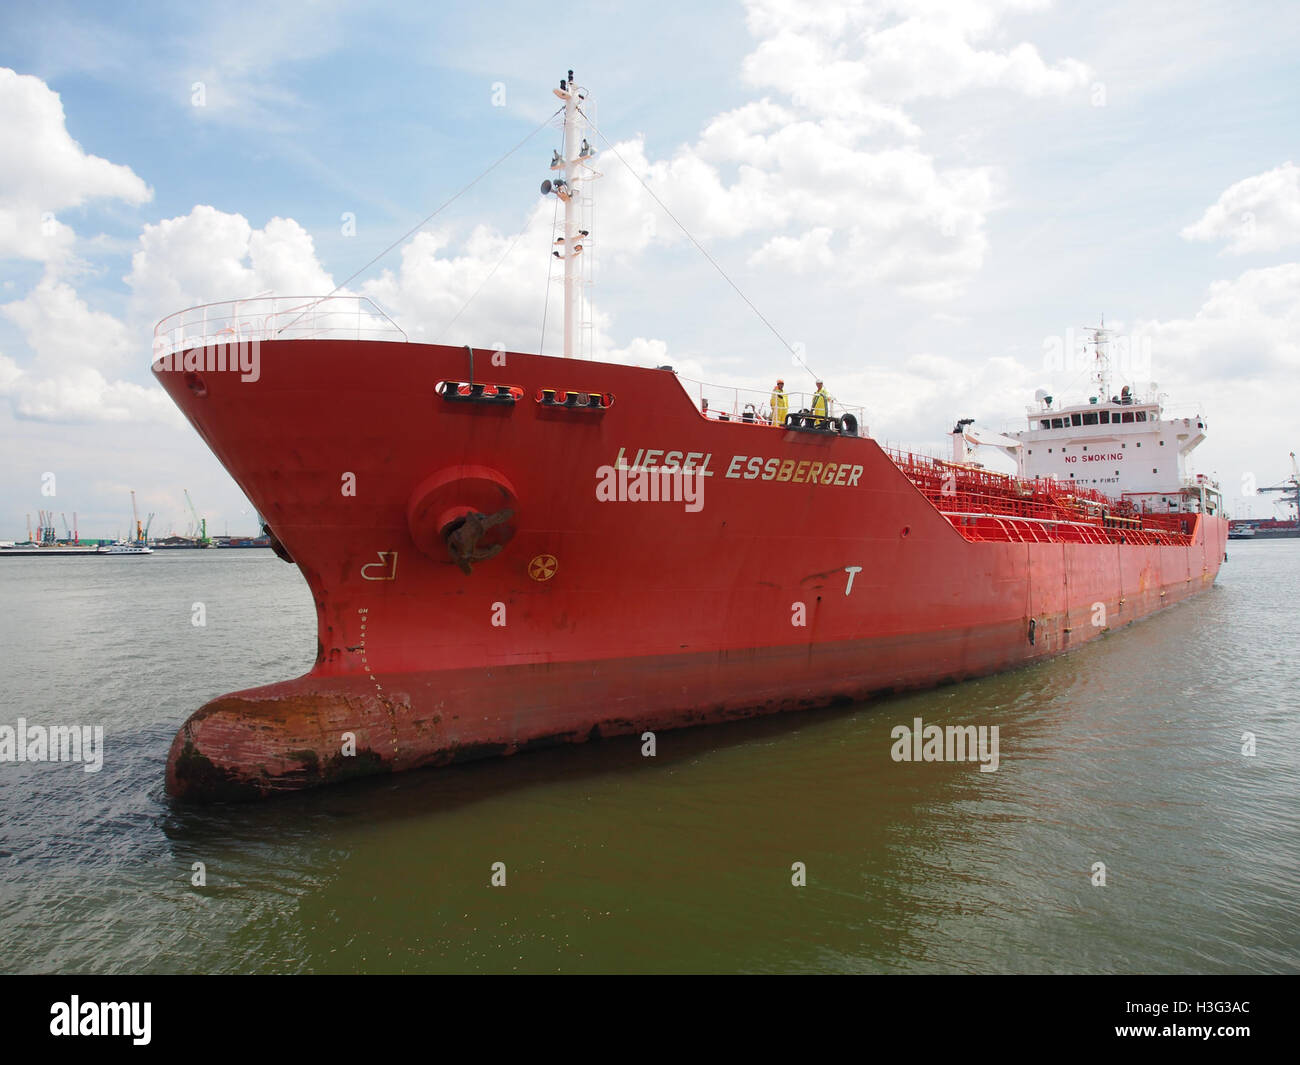 Liesel Essberger (ship, 2004) IMO 9272761, Port of Antwerp pic3 - Stock Image